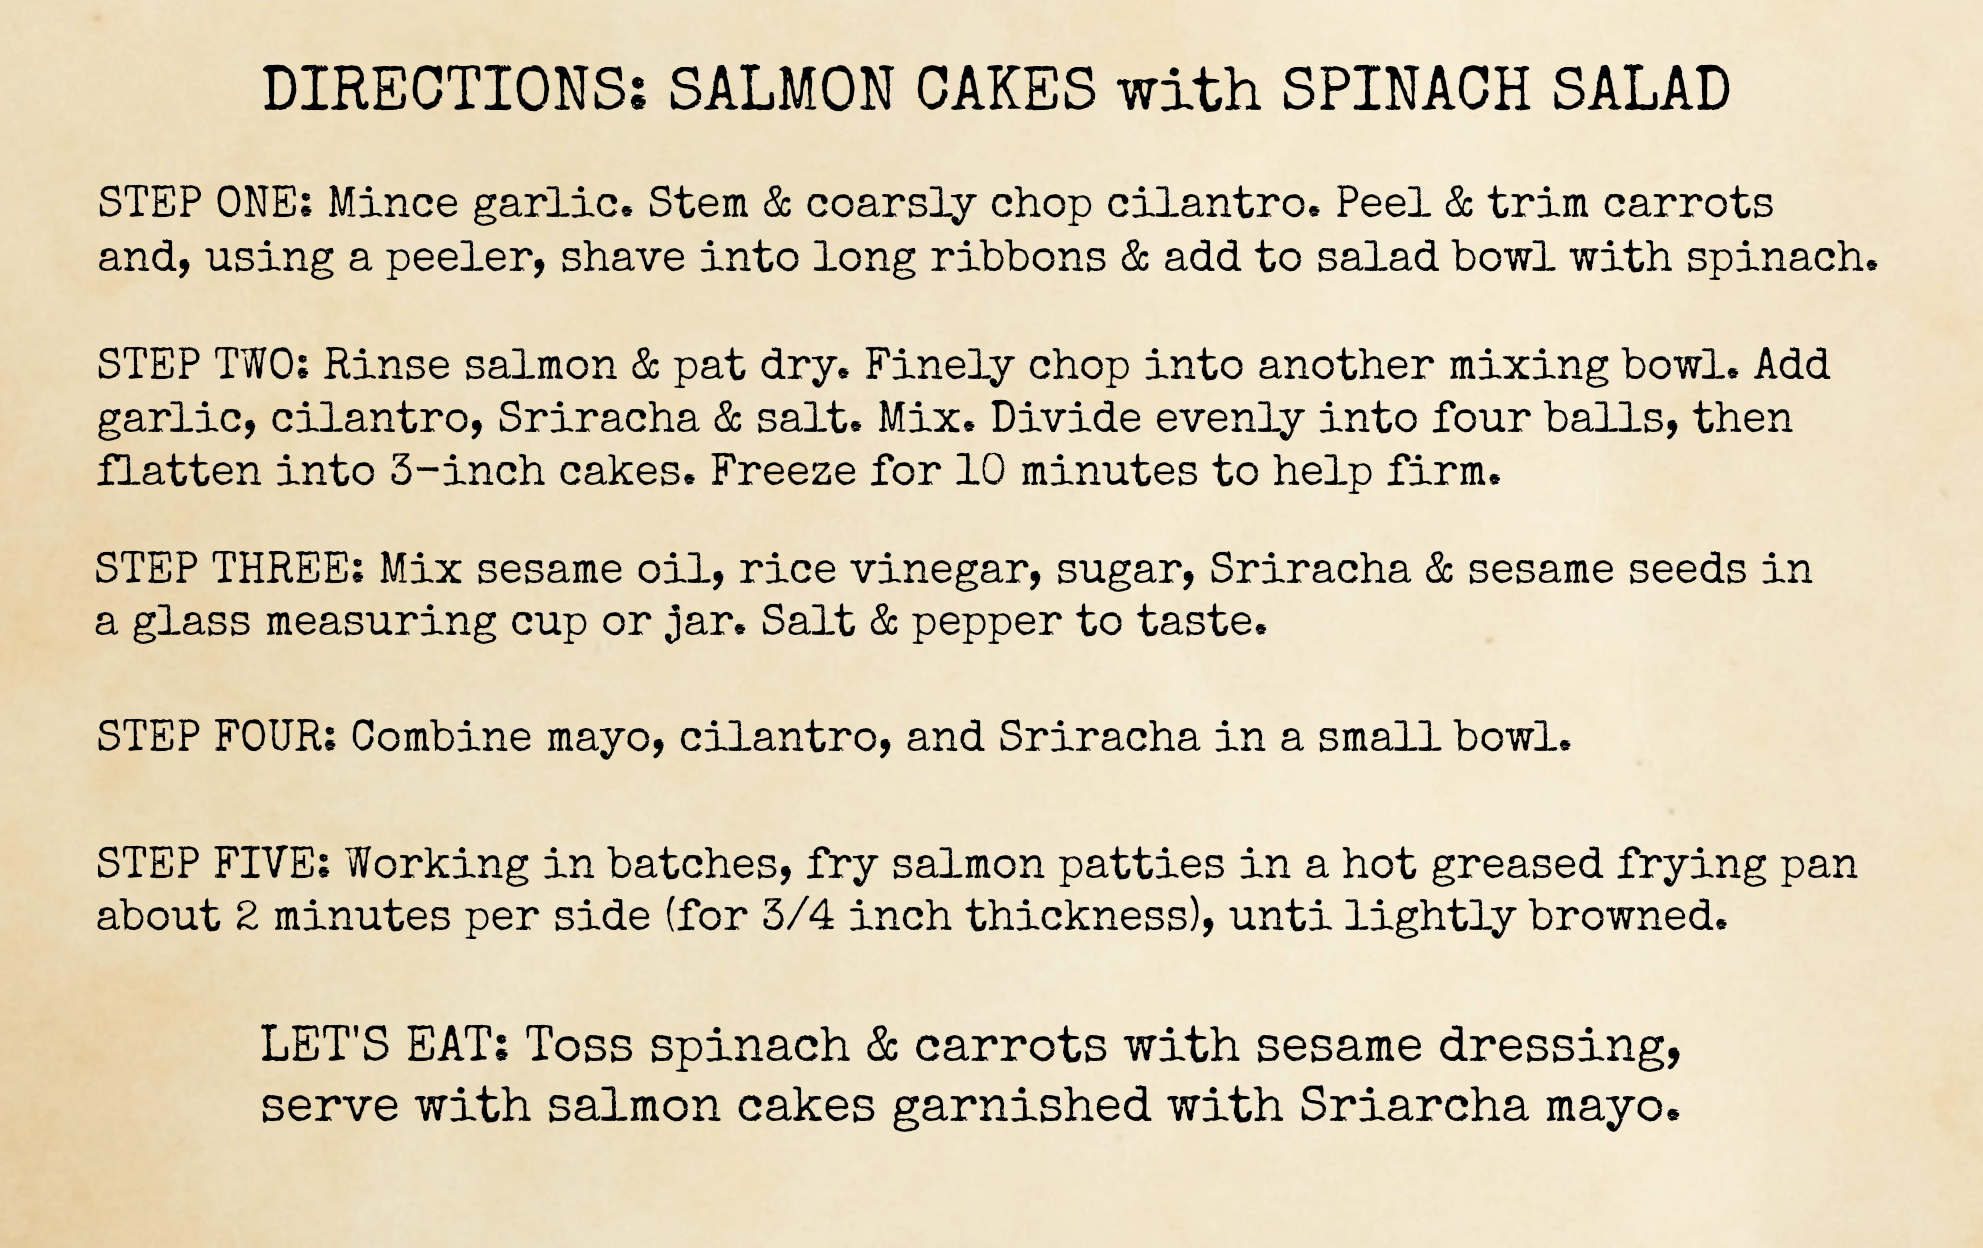 eastfallslocal-salmon-and-spinach-salad-directions